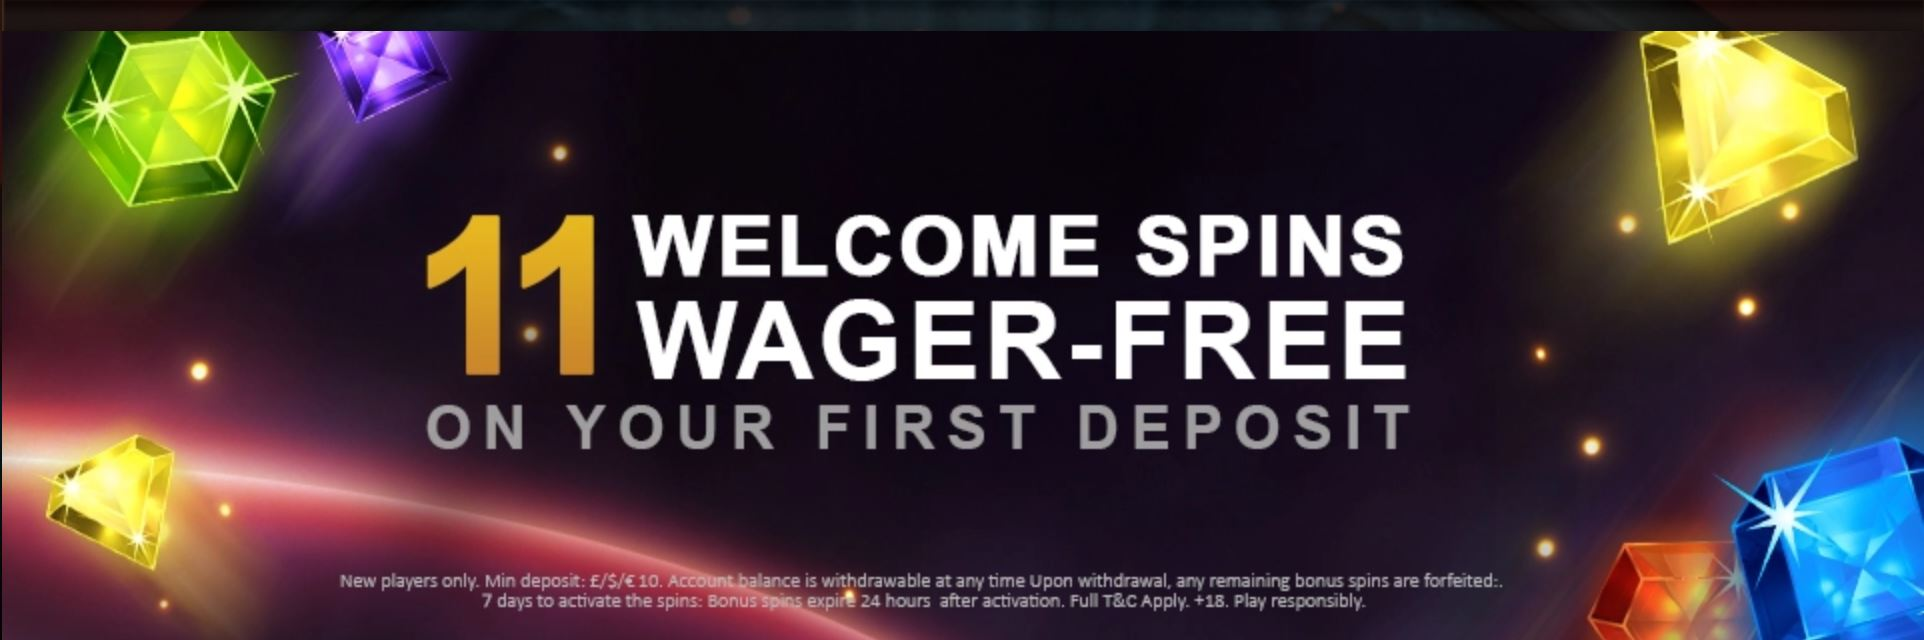 No wagering casino free spins